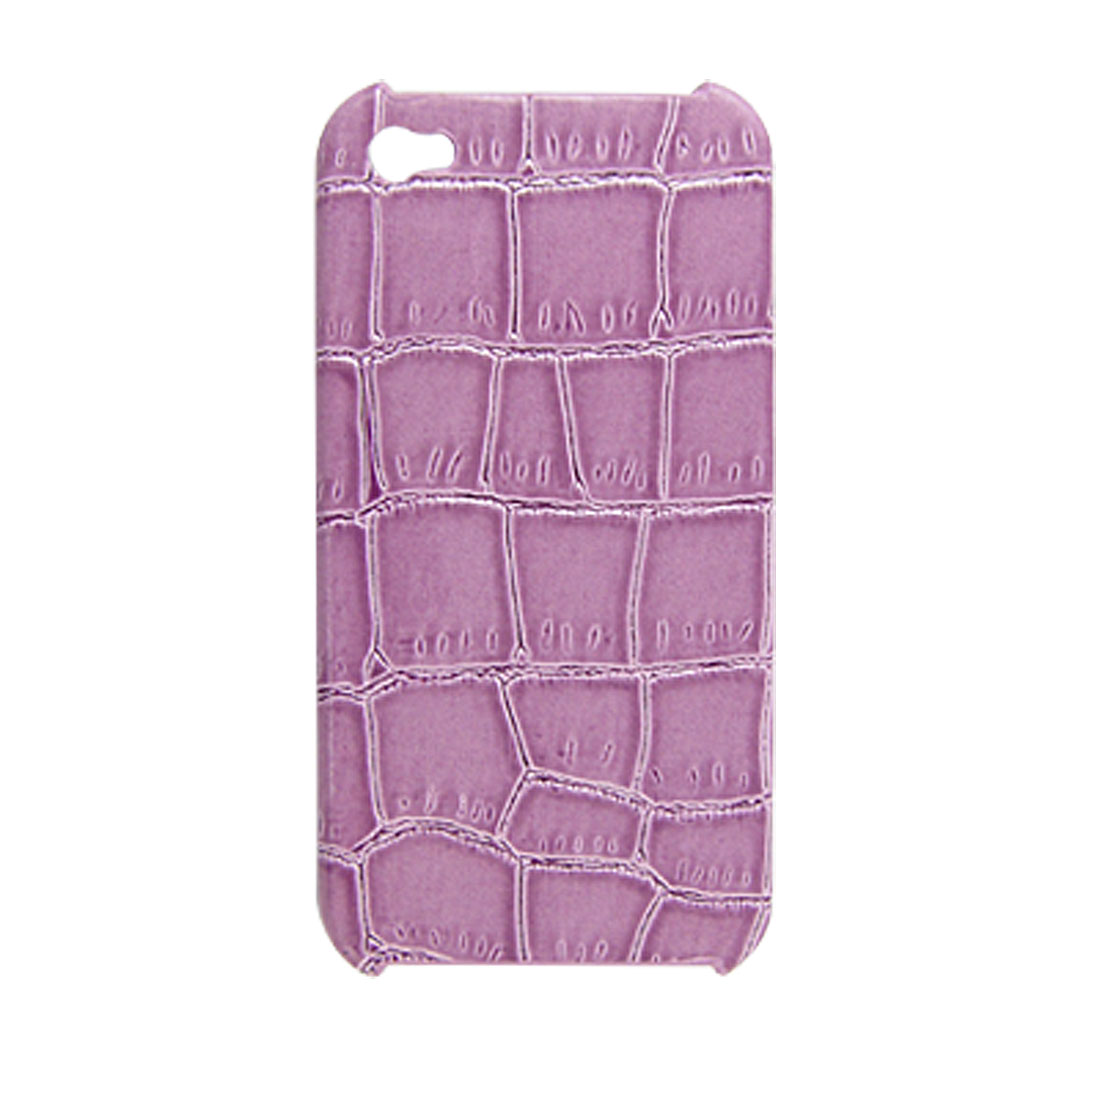 Purple Textured Hard Plastic Back Case for iPhone 4 4G